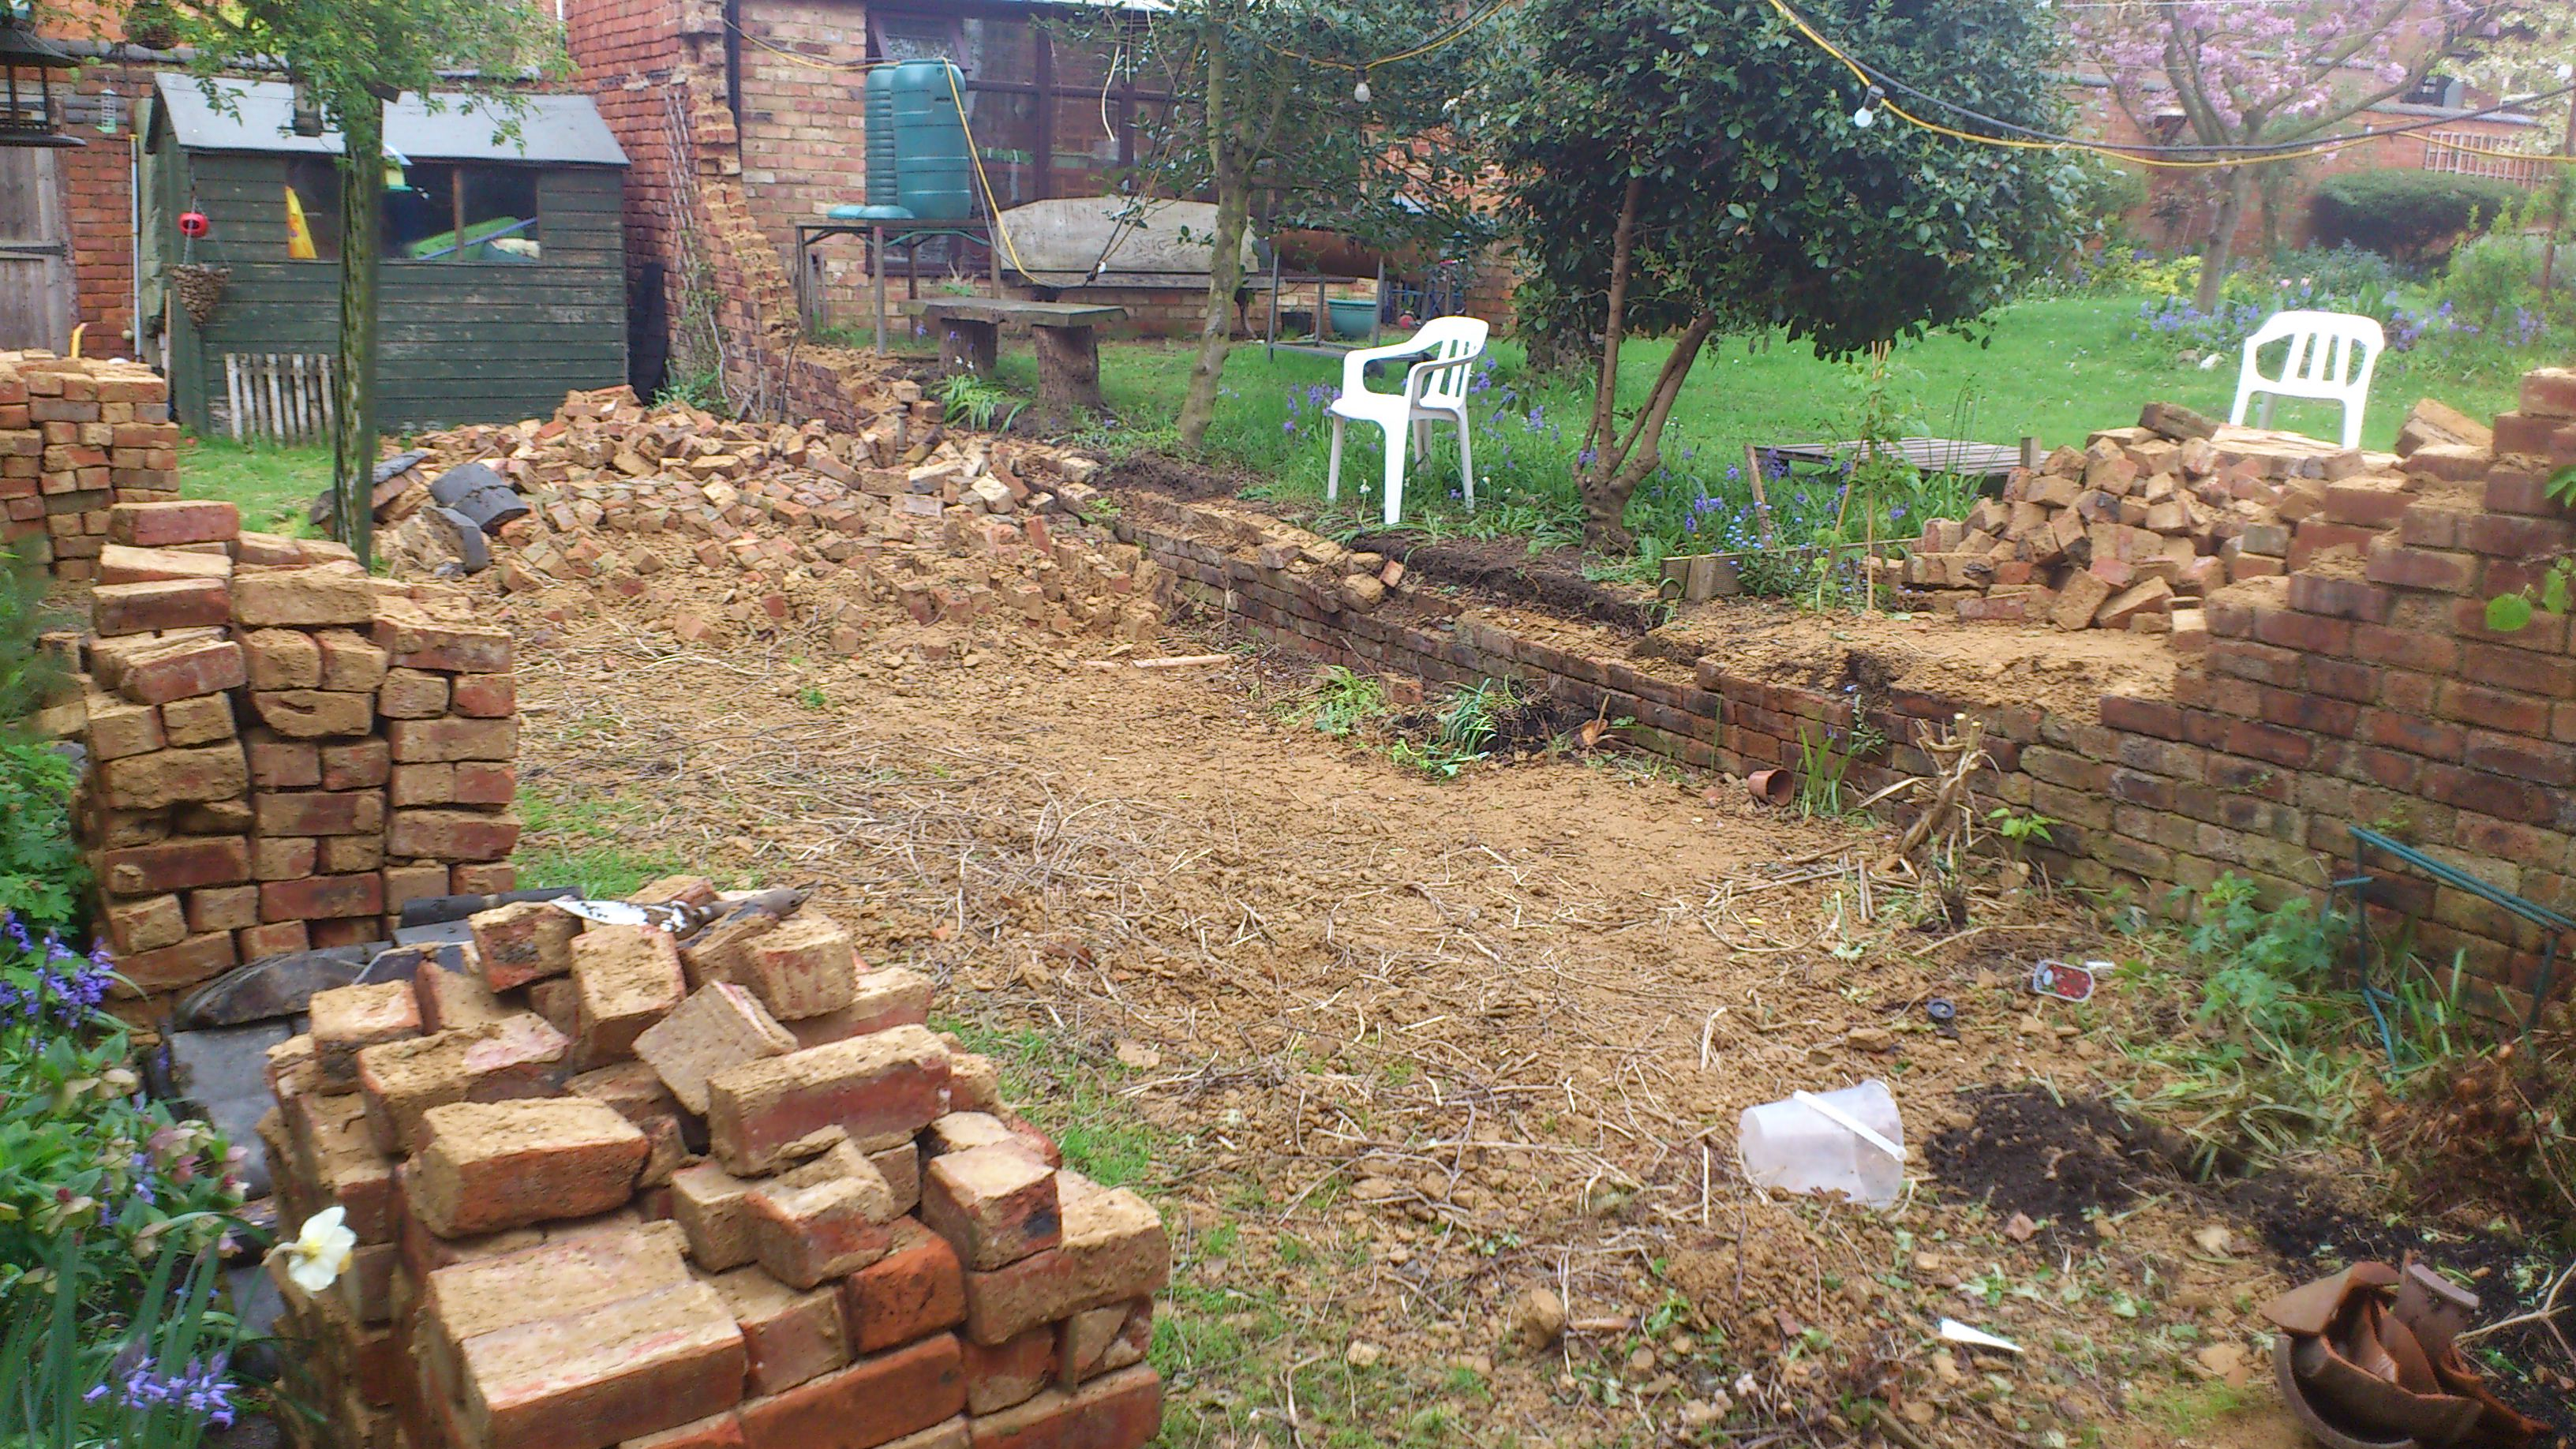 Sick of chipping away at bricks to recover ruined garden; an update ...